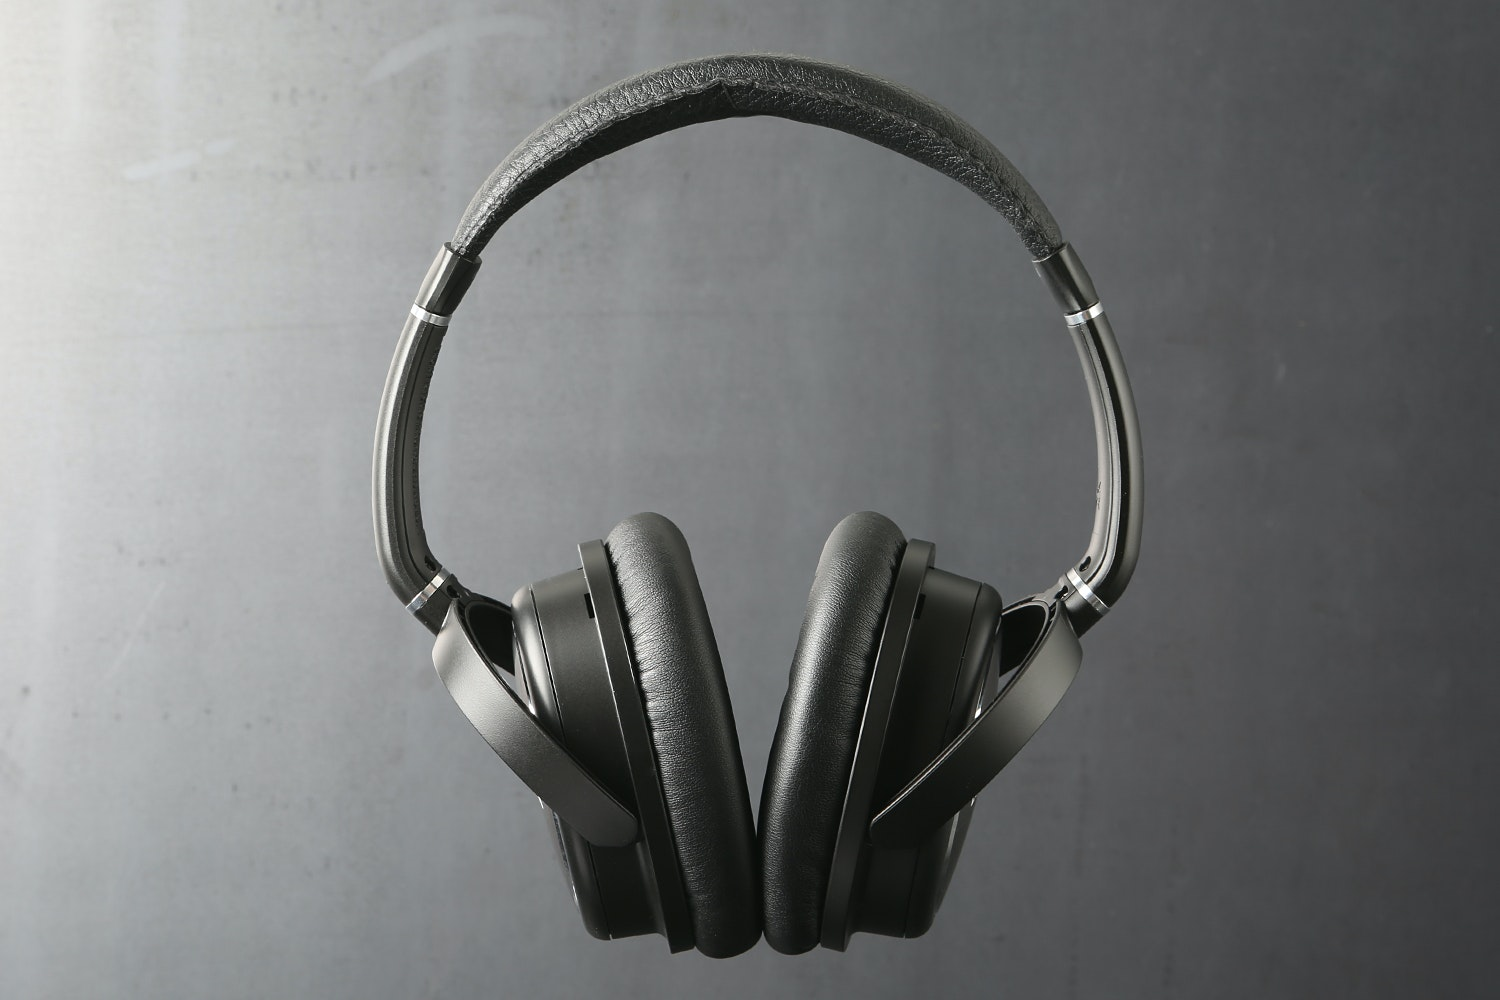 Edifier H850 Headphone